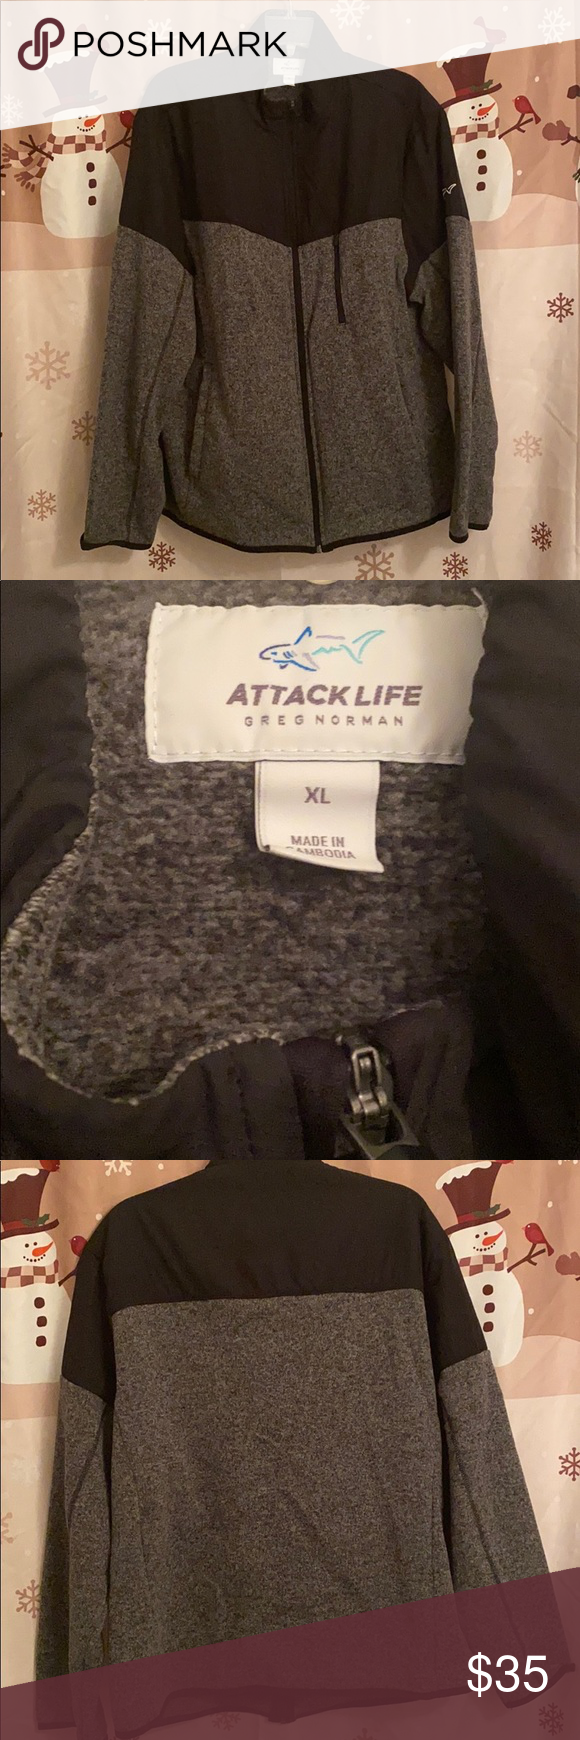 Attack Life Greg Norman Collection Zip Up Fleece Only Worn Twice Excellent Condition Greg Norman Collection Jackets Coats Perfor Greg Norman Zip Ups Norman